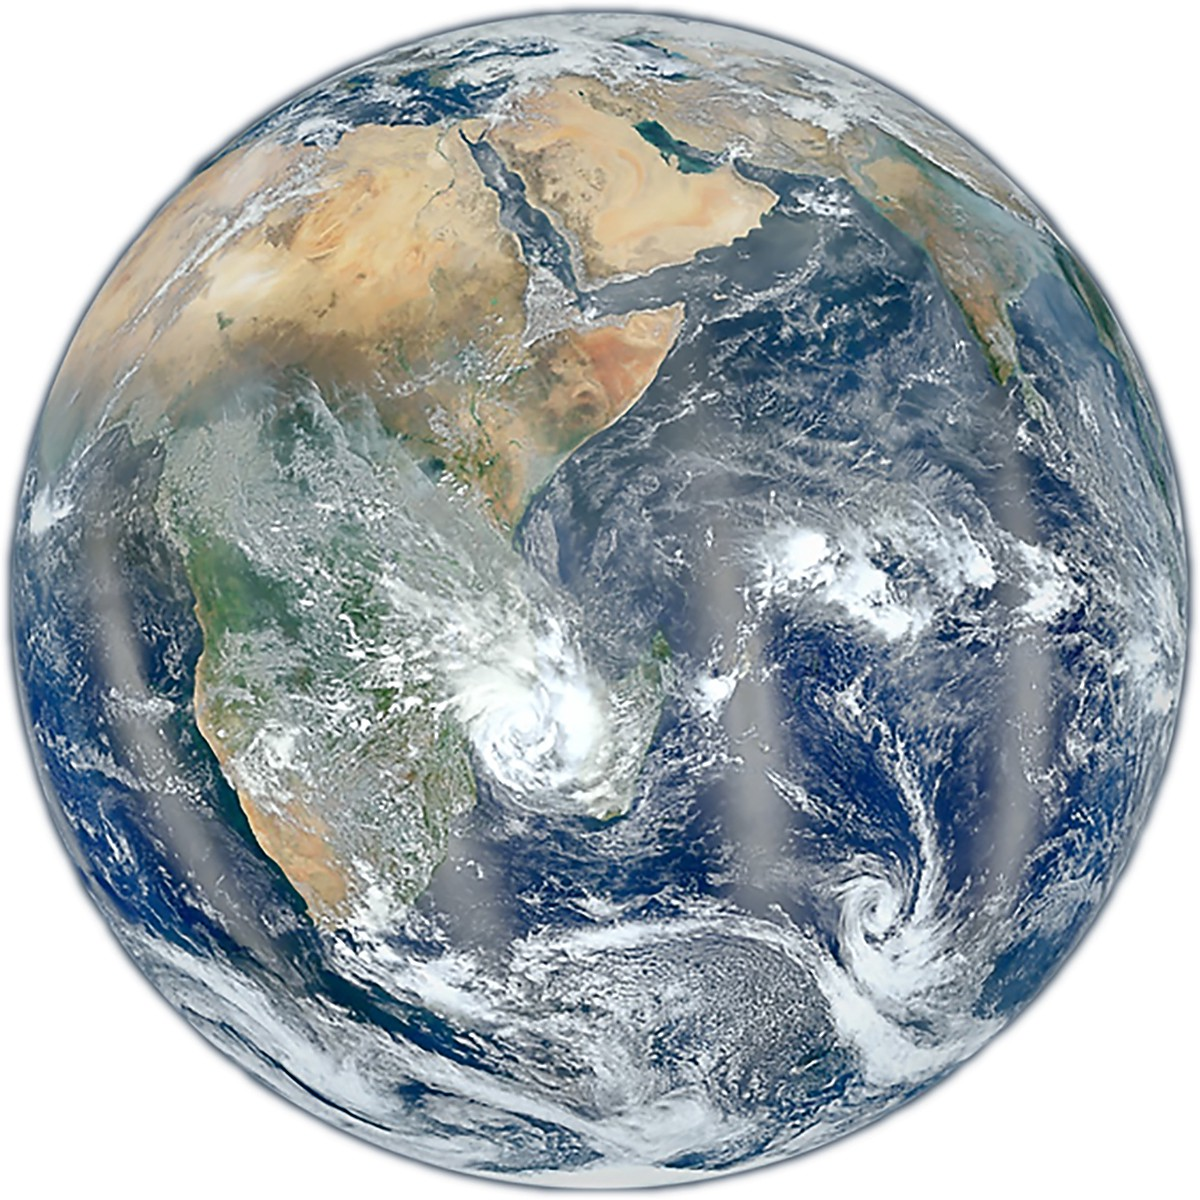 Full-color satellite image of the Earth.